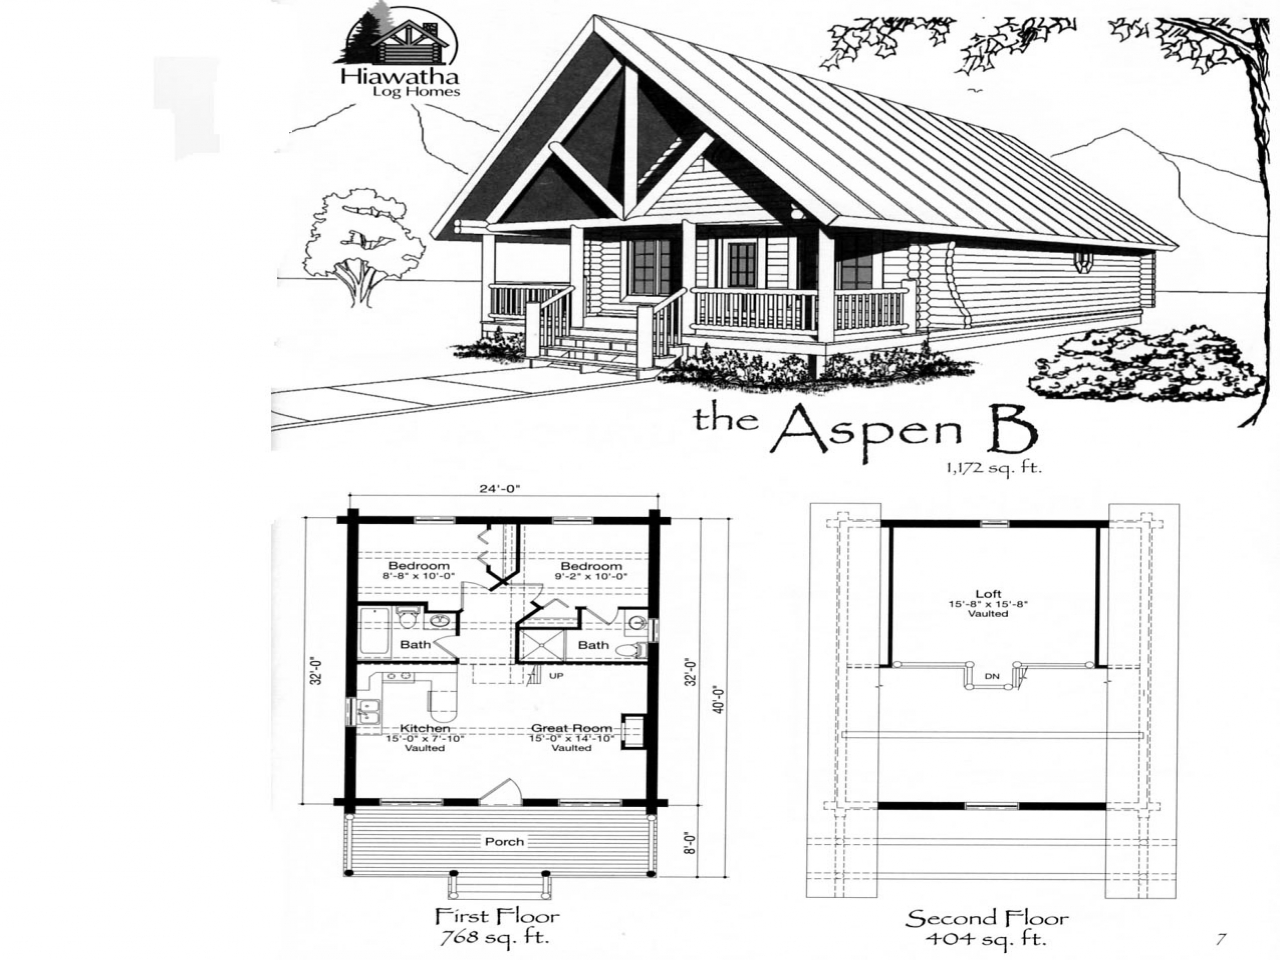 Tiny Victorian House Plans Small Cabins Tiny Houses Homes: Small Off-Grid Cabin Interior Small Cabin House Floor